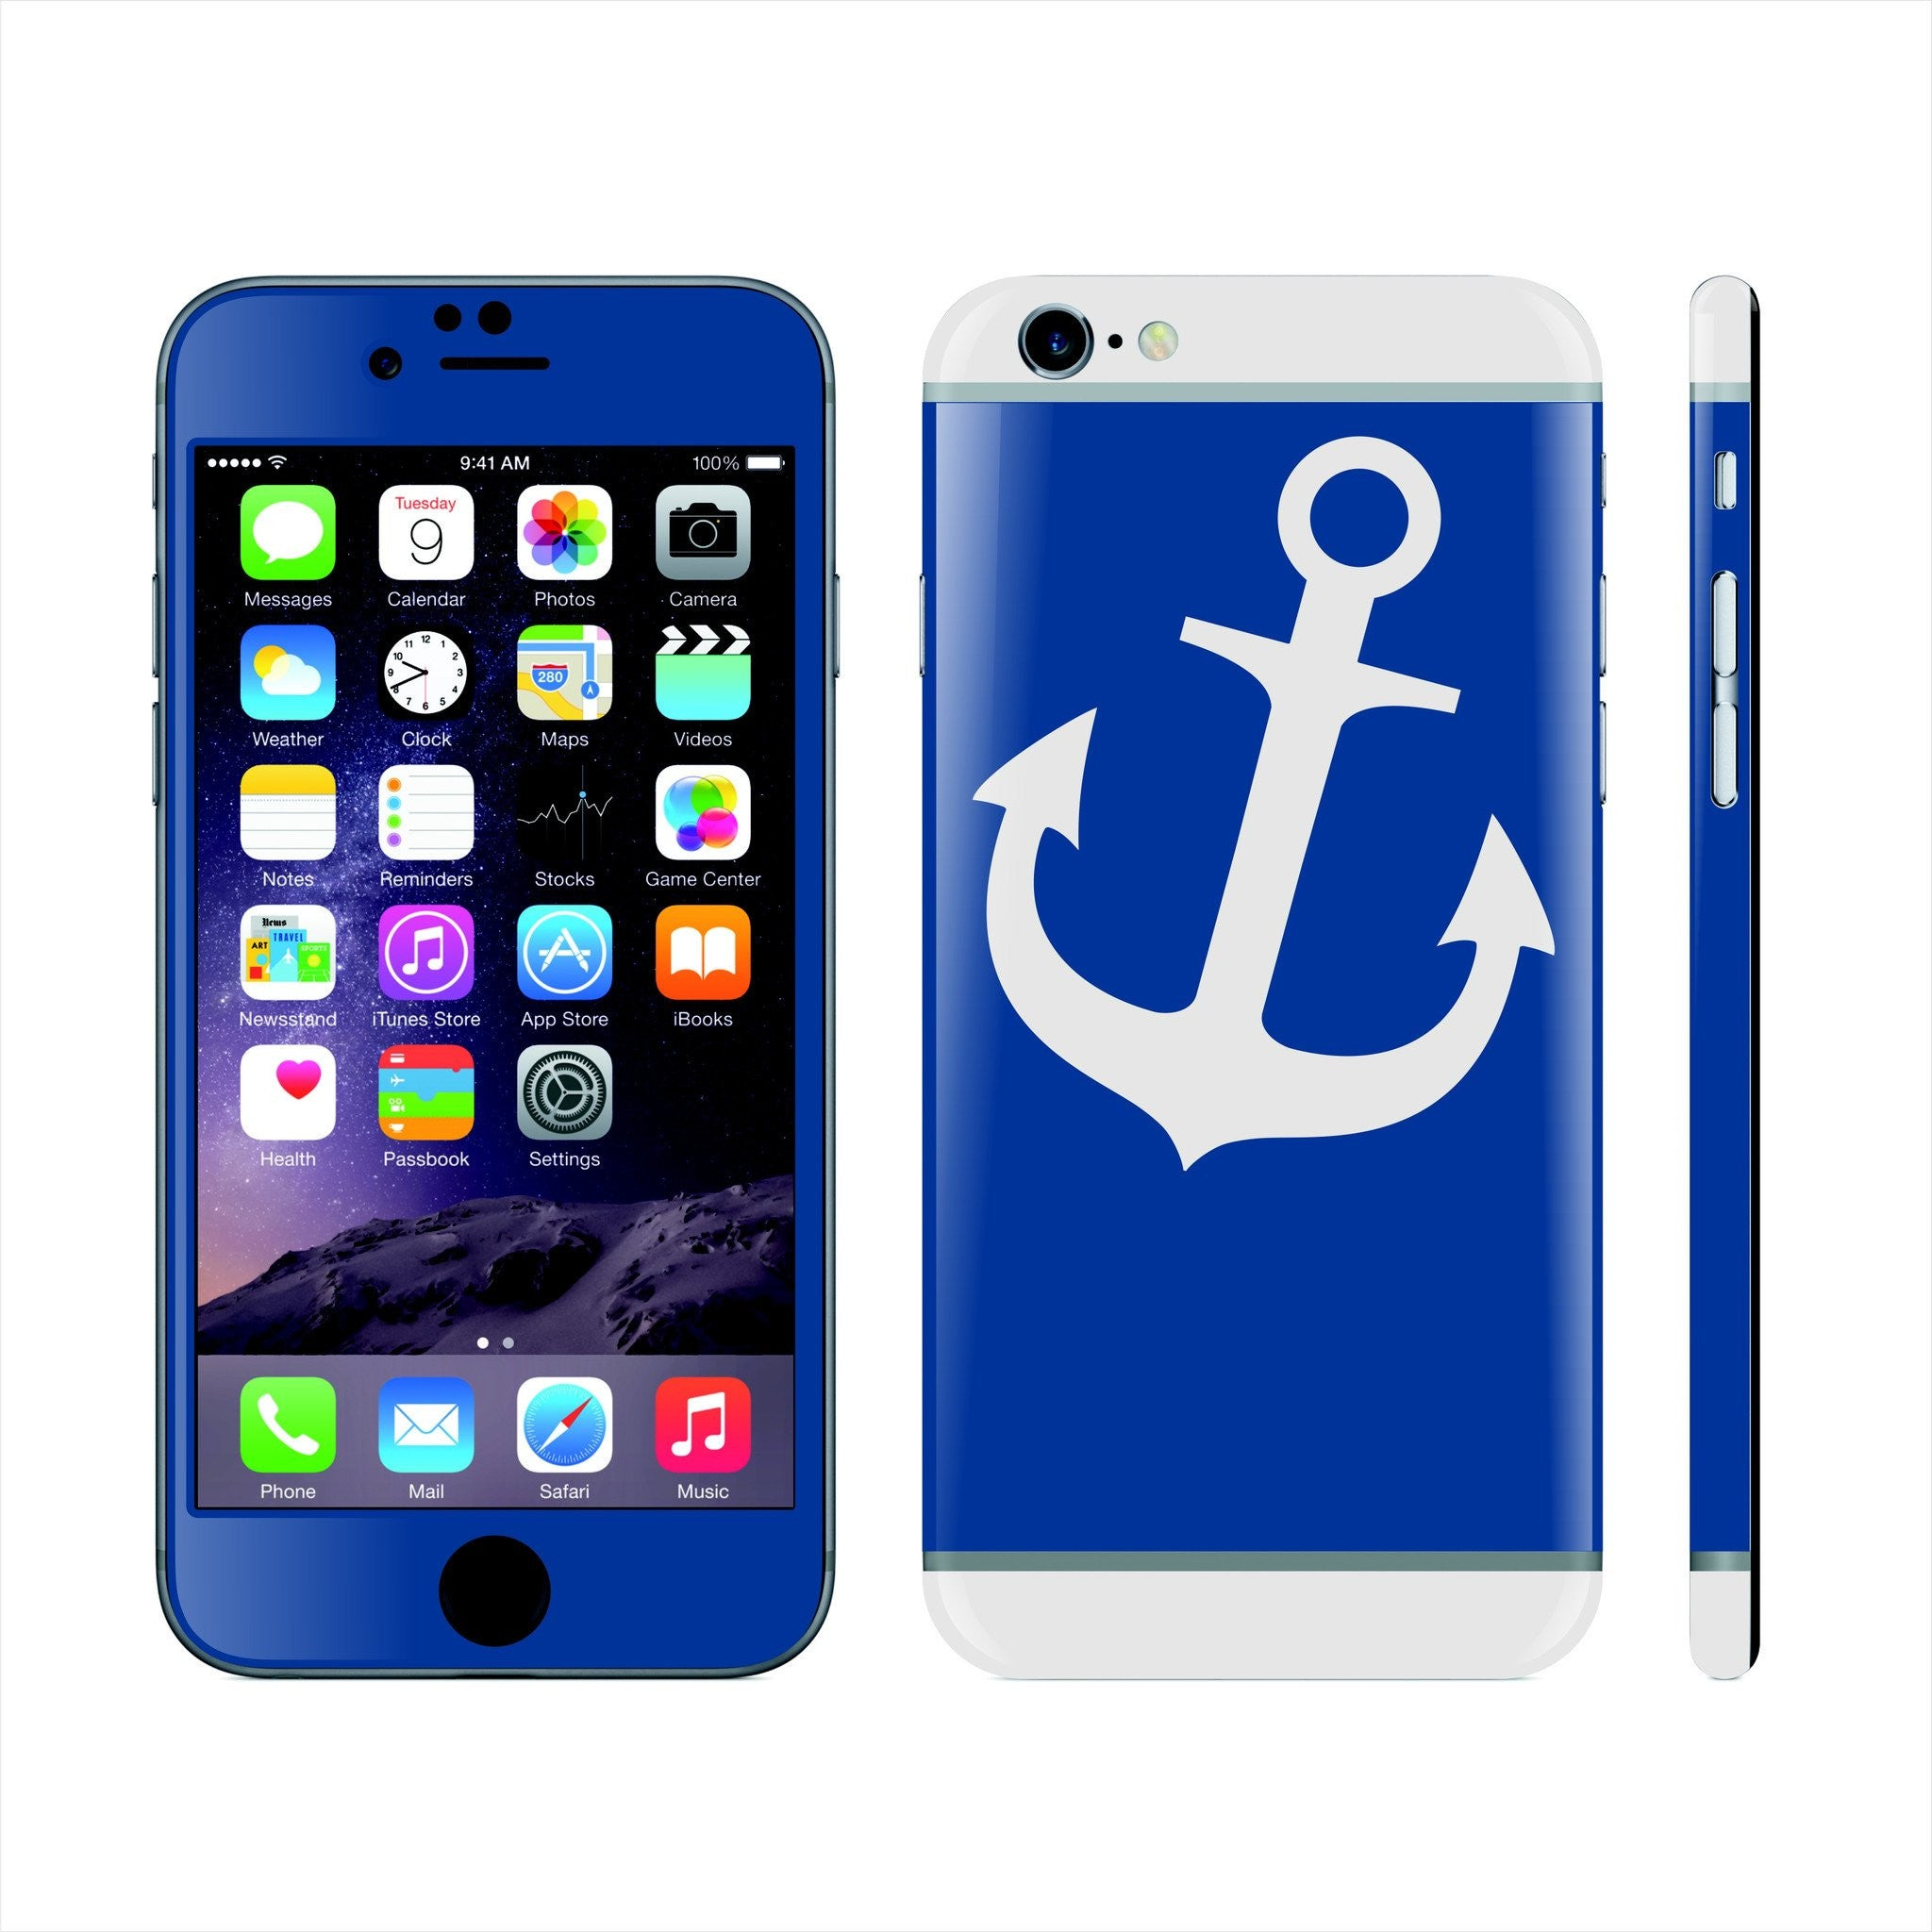 iPhone 6S Custom Colorful Design Edition  Anchor 020 Skin Wrap Sticker Cover Decal Protector by EasySkinz